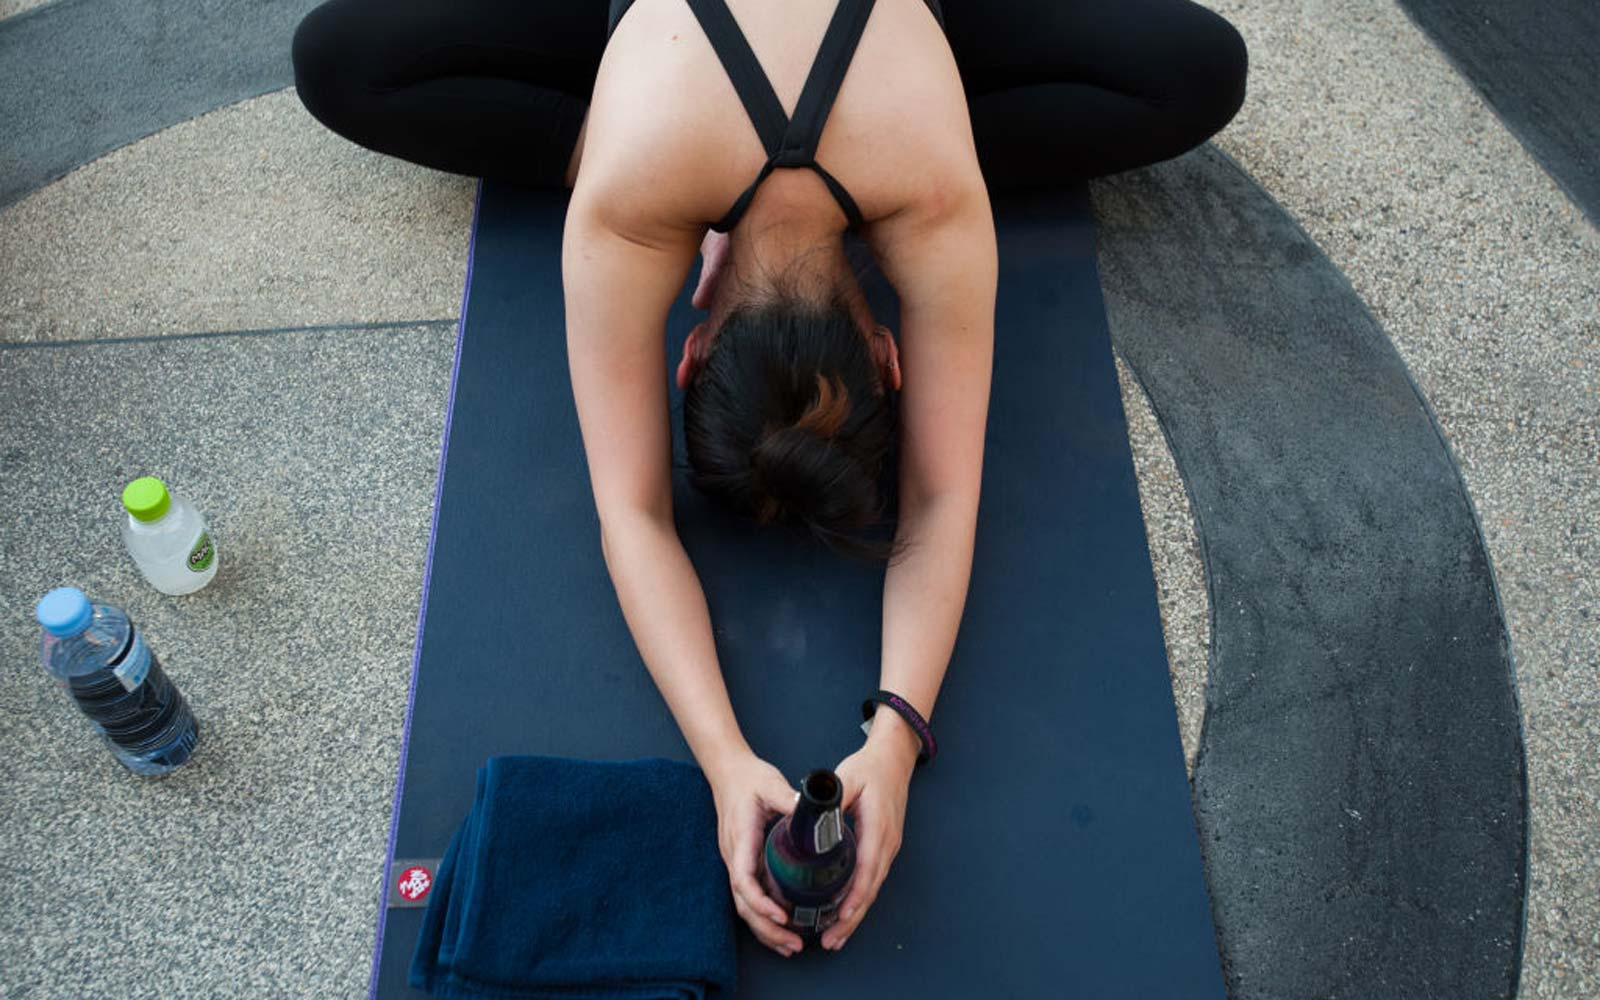 This 'Rage Yoga' Class Lets You Swear and Drink Beer to Get in the Yoga Flow